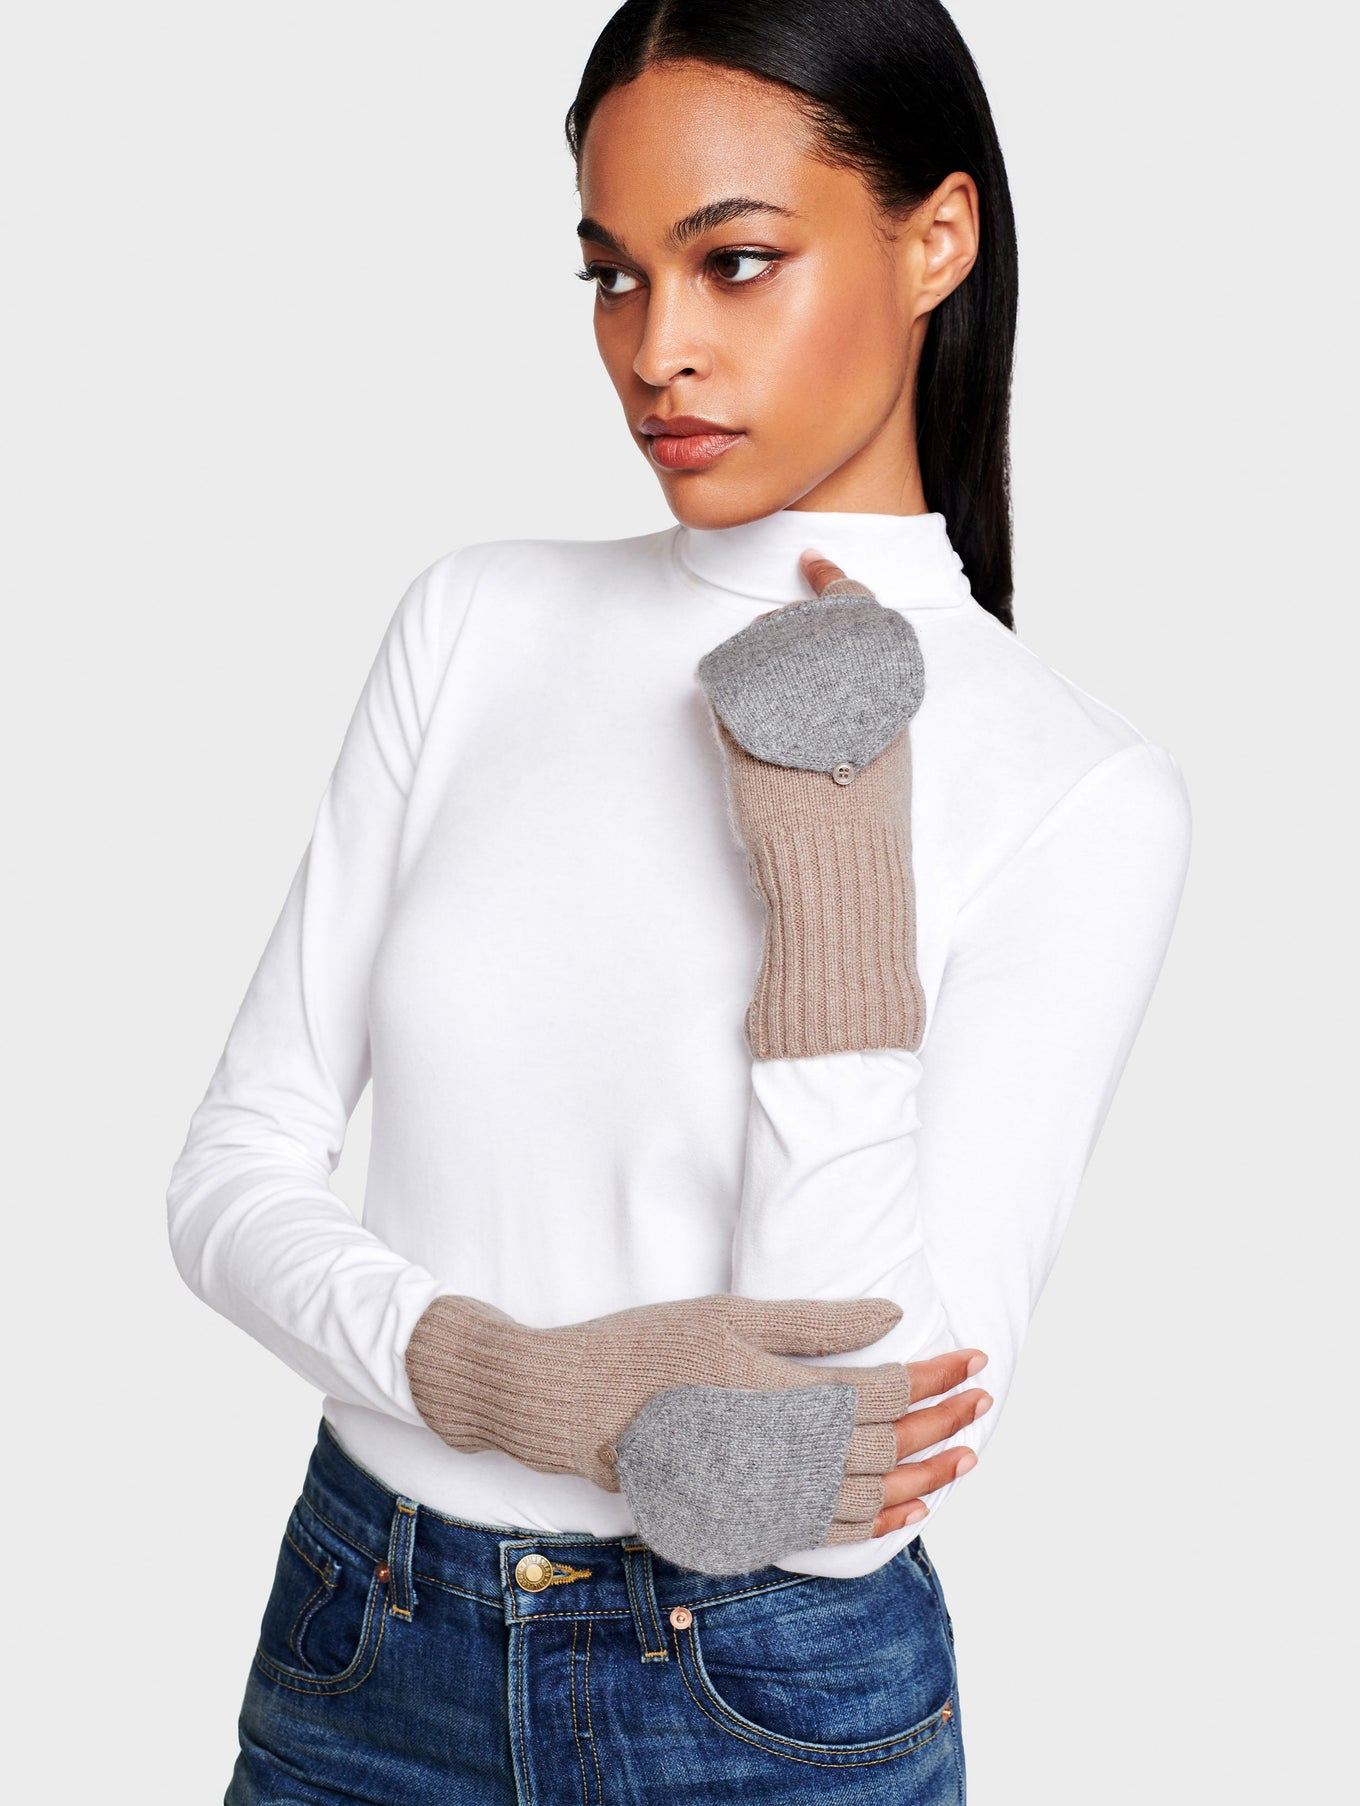 Cashmere Pop Top Glove